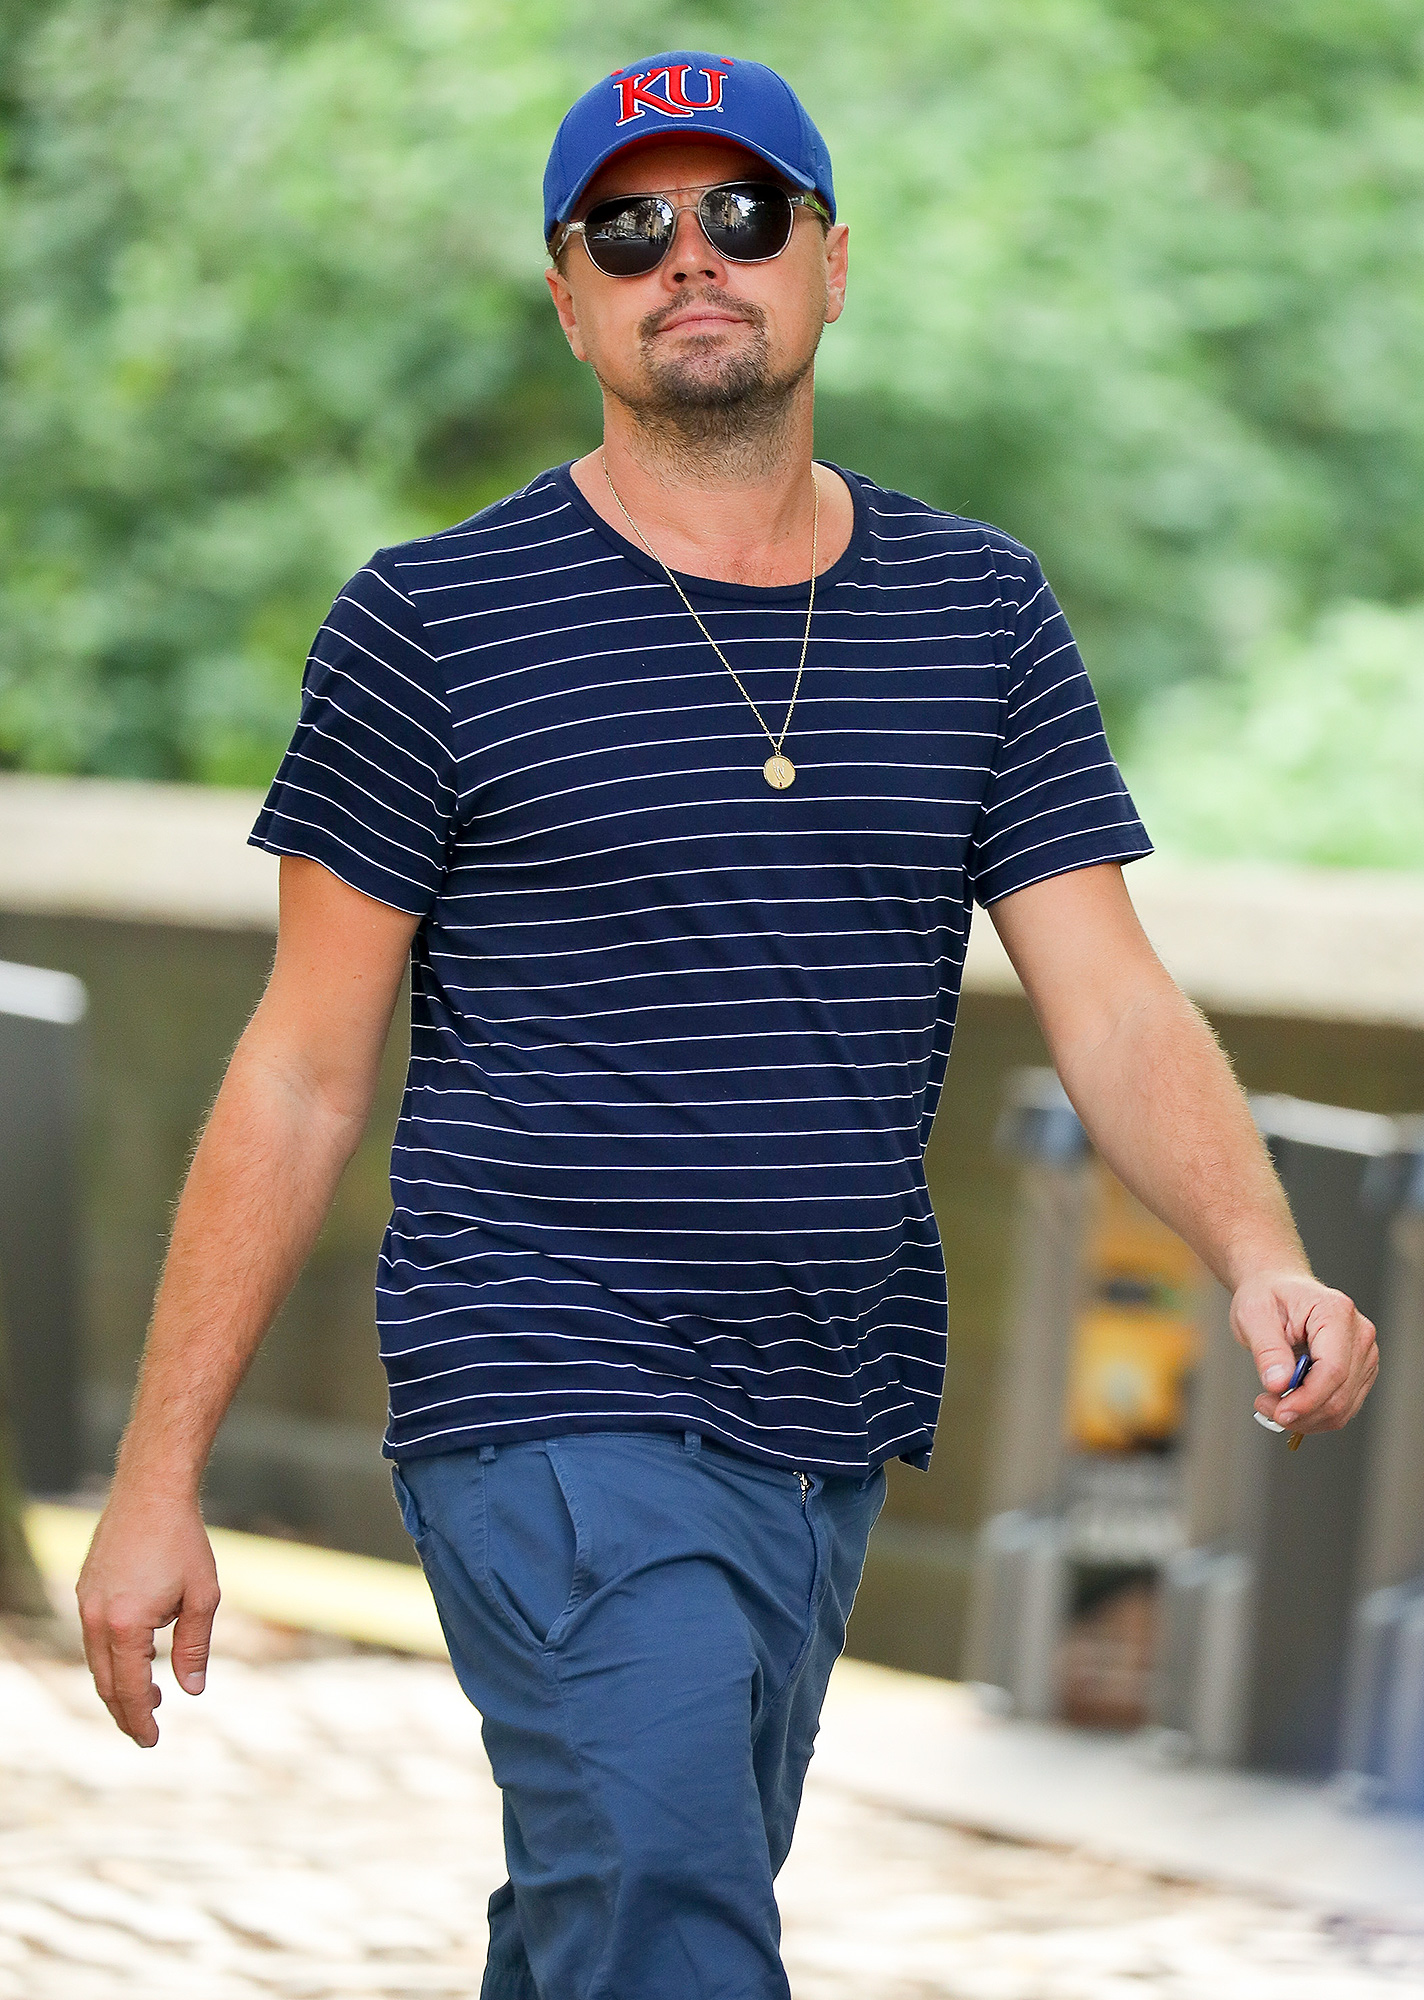 EXCLUSIVE: Leonardo DiCaprio was spotted taking a walk around Central Park in New York City